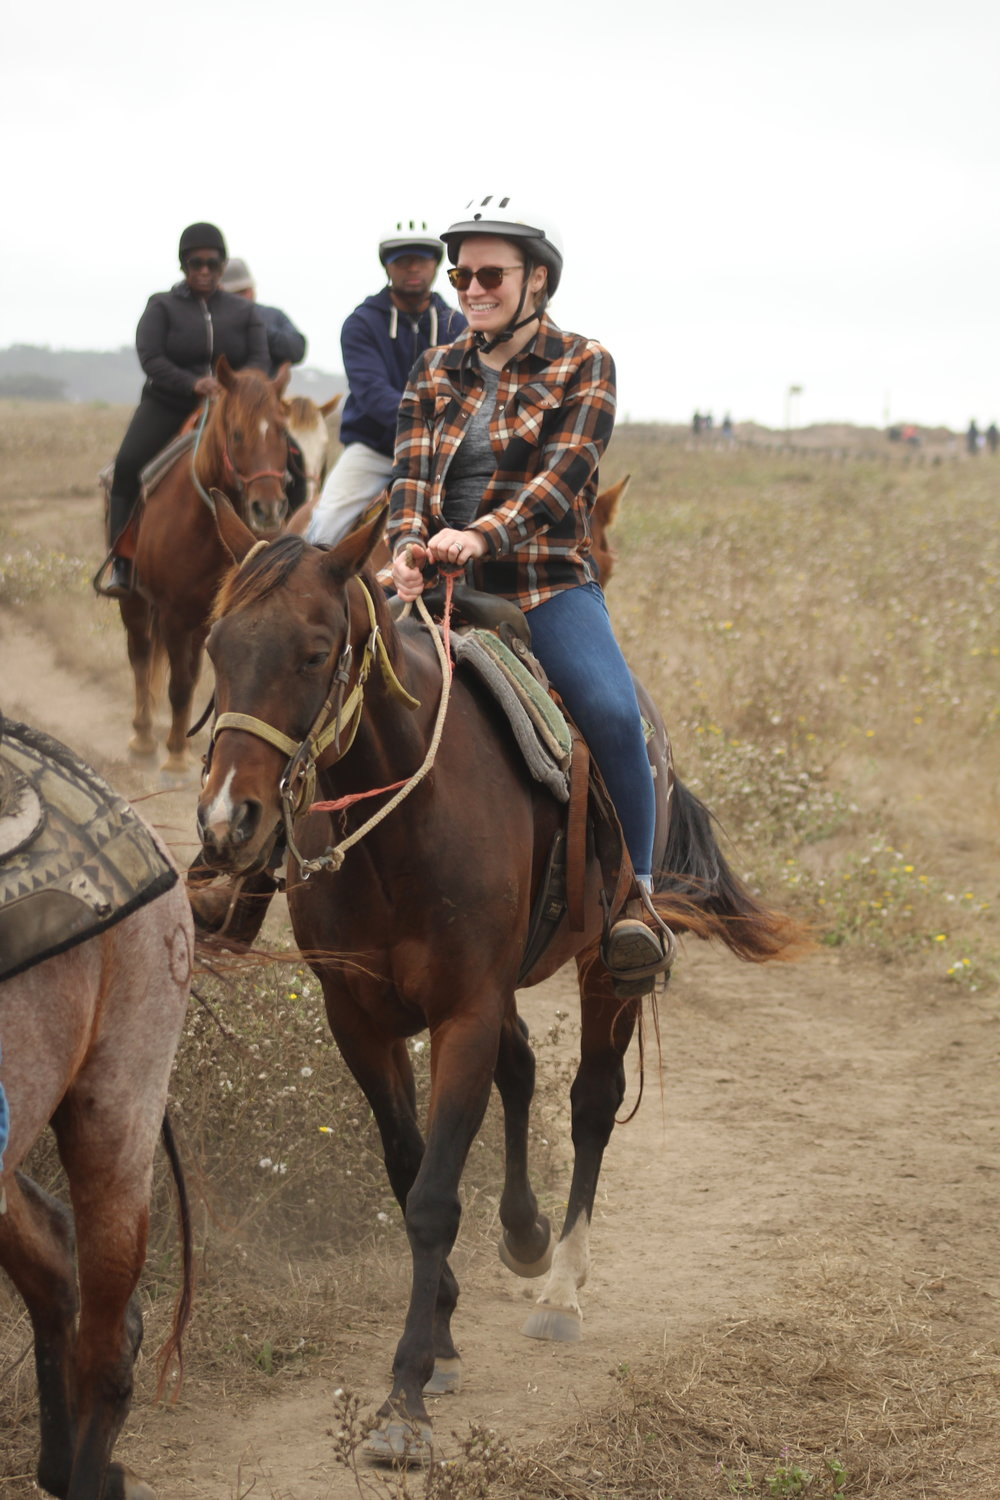 Horseback riding in Half Moon Bay